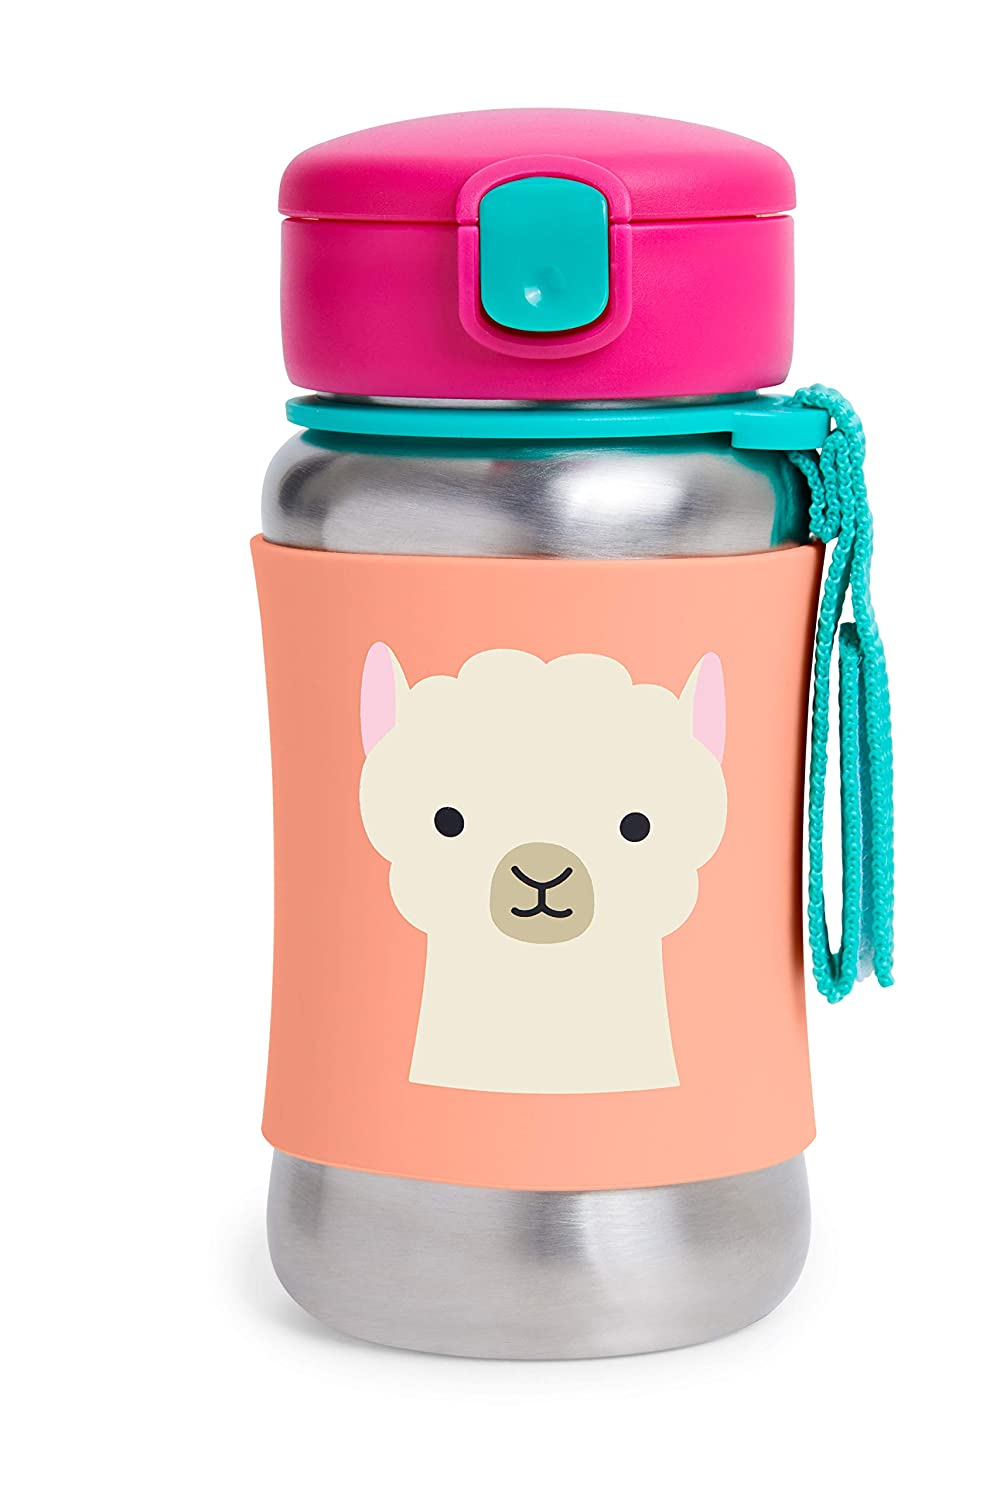 Skip Hop Toddler Sippy Cup Transition Bottle: Stainless Steel Bottle with Straw, Llama